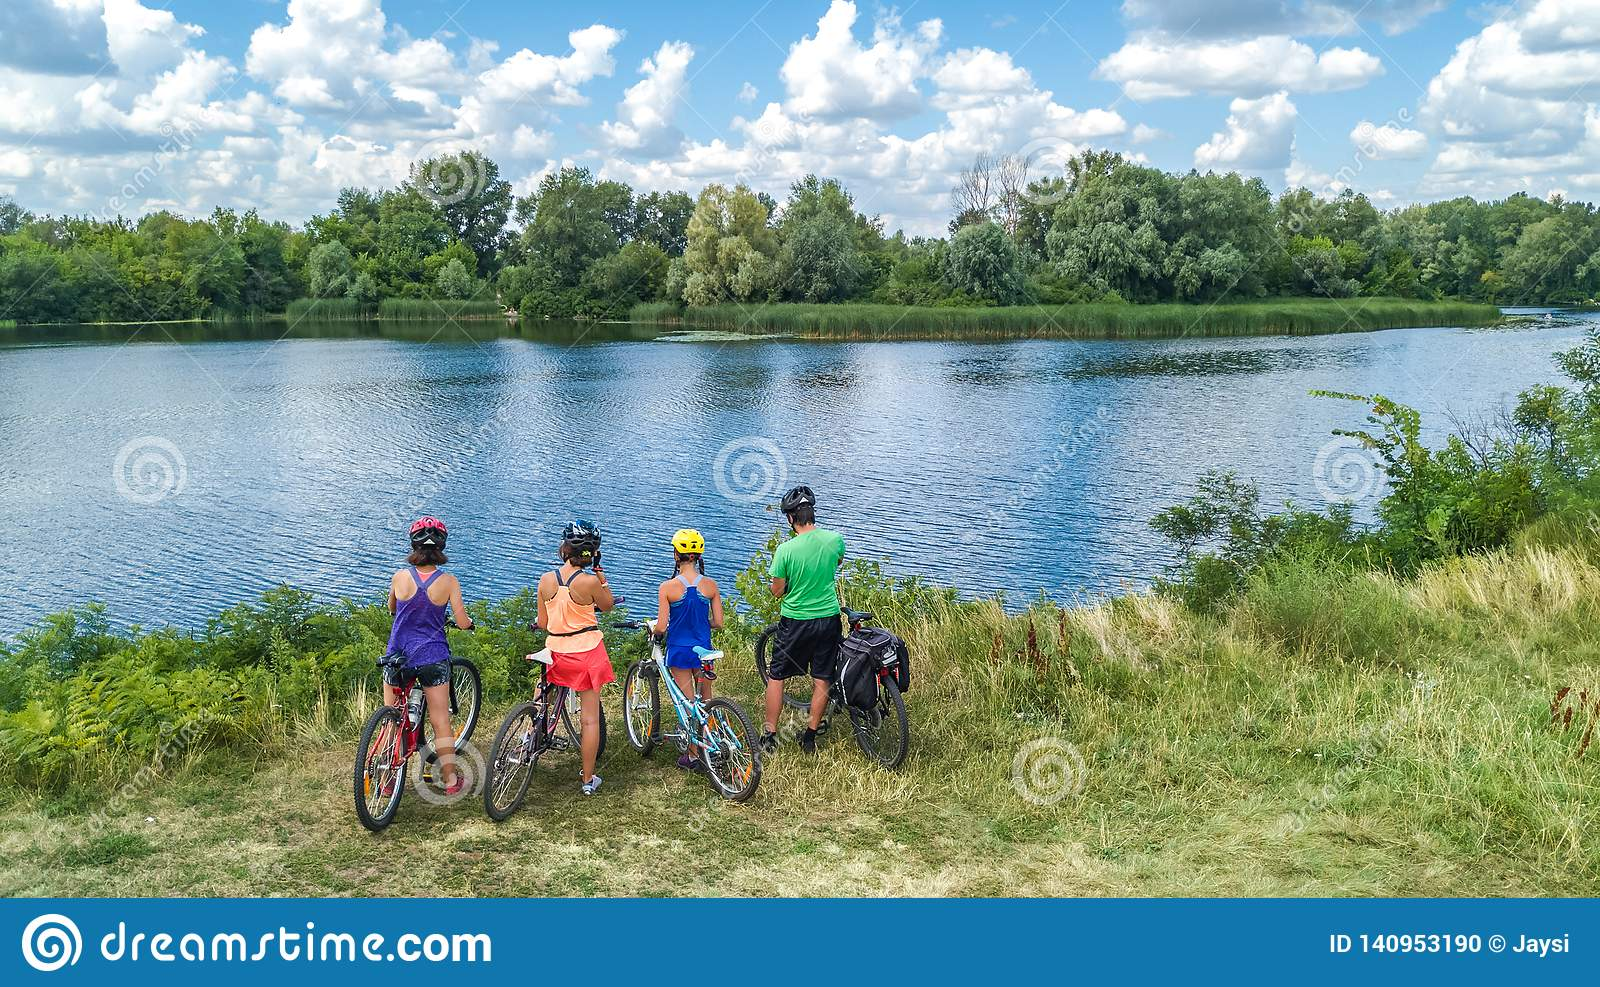 Family on bikes cycling outdoors, active parents and kids on bicycles, aerial view of happy family with children relaxing